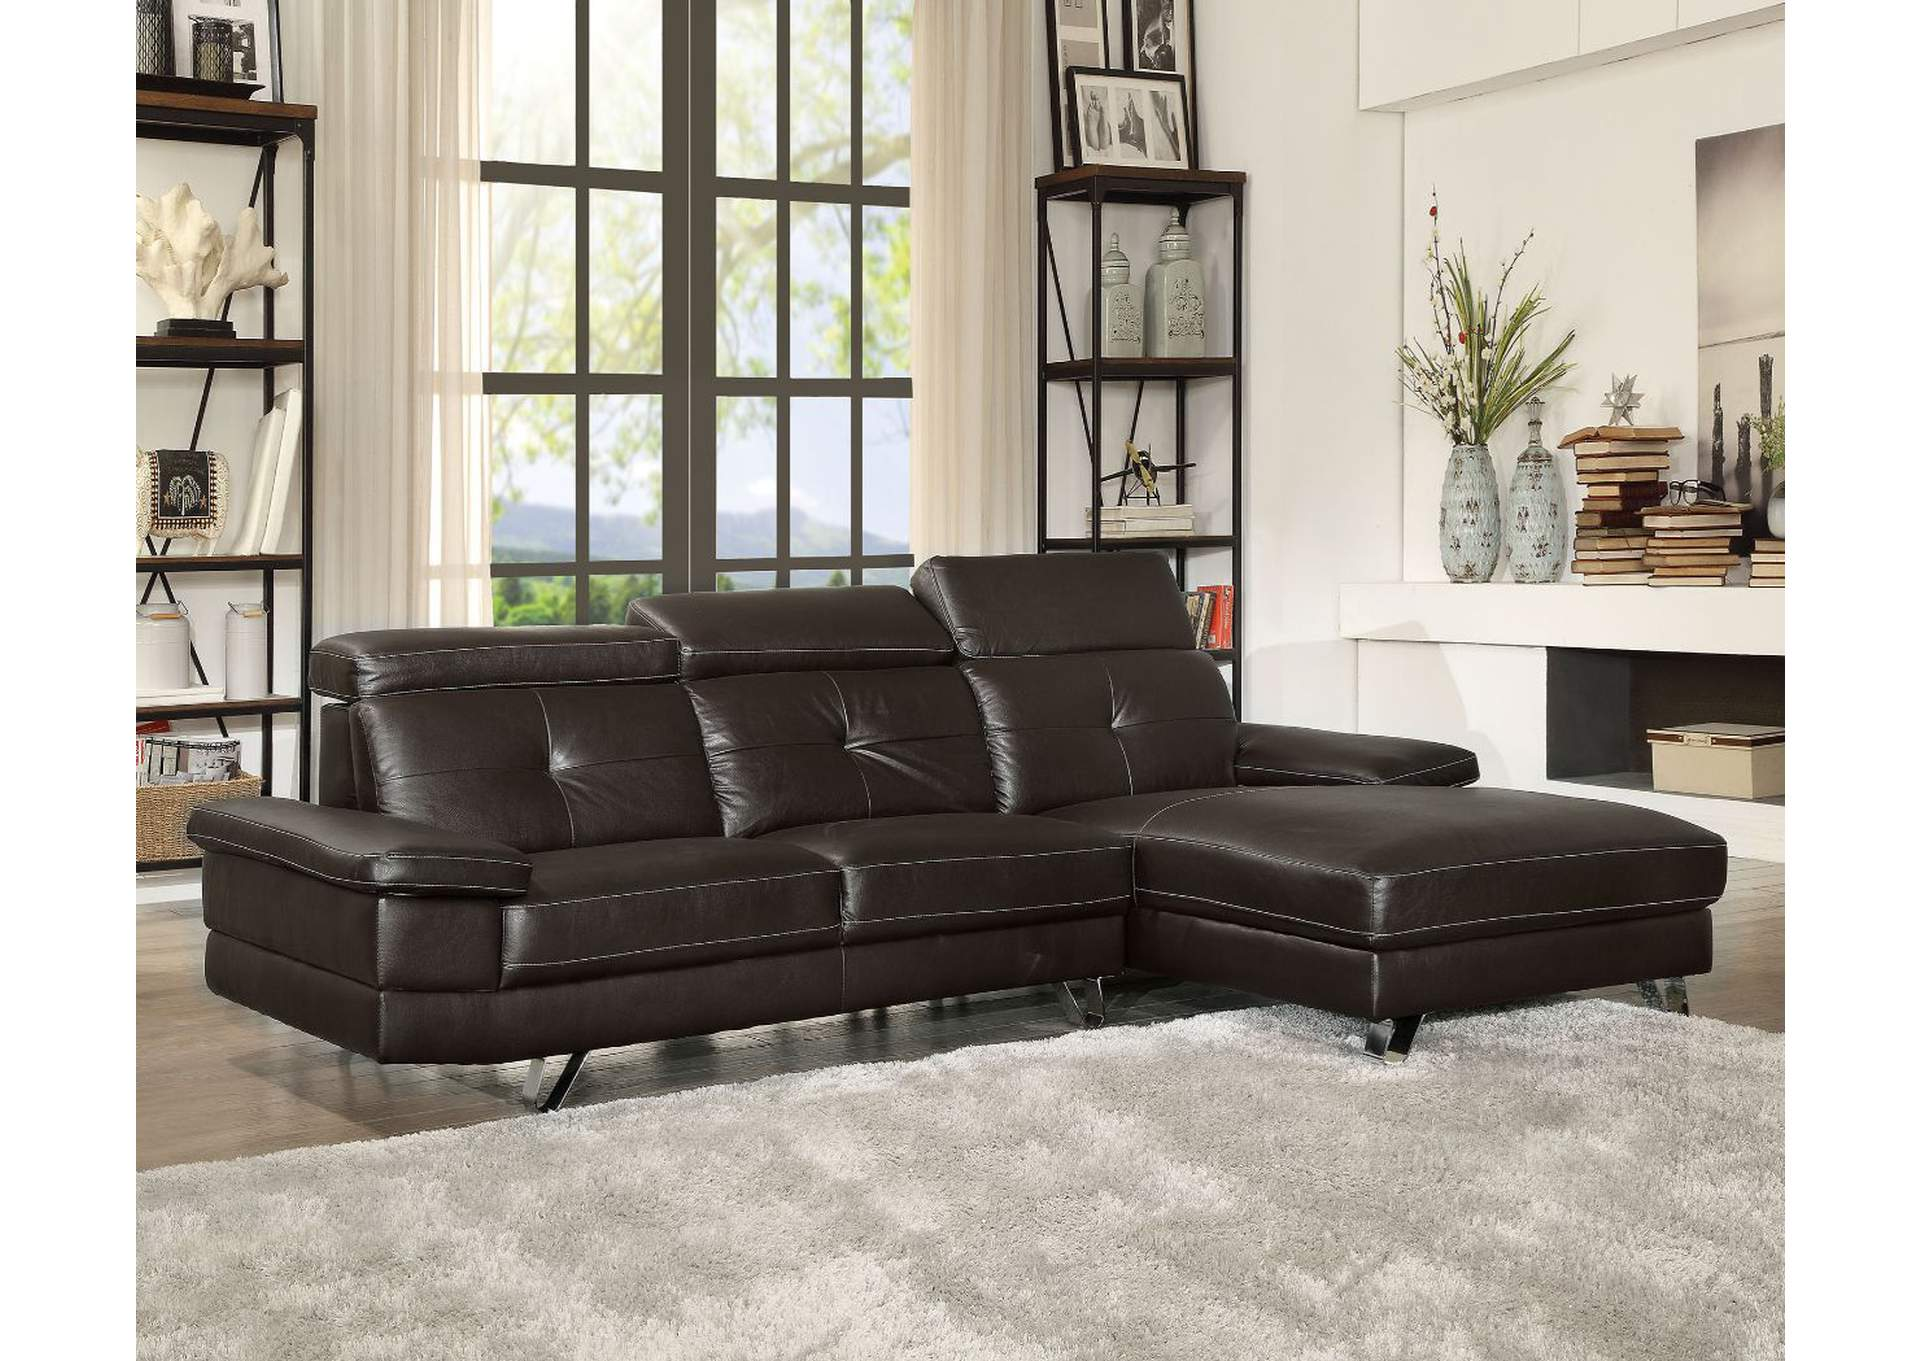 Aeryn Espresso PU Sectional Sofa,Acme